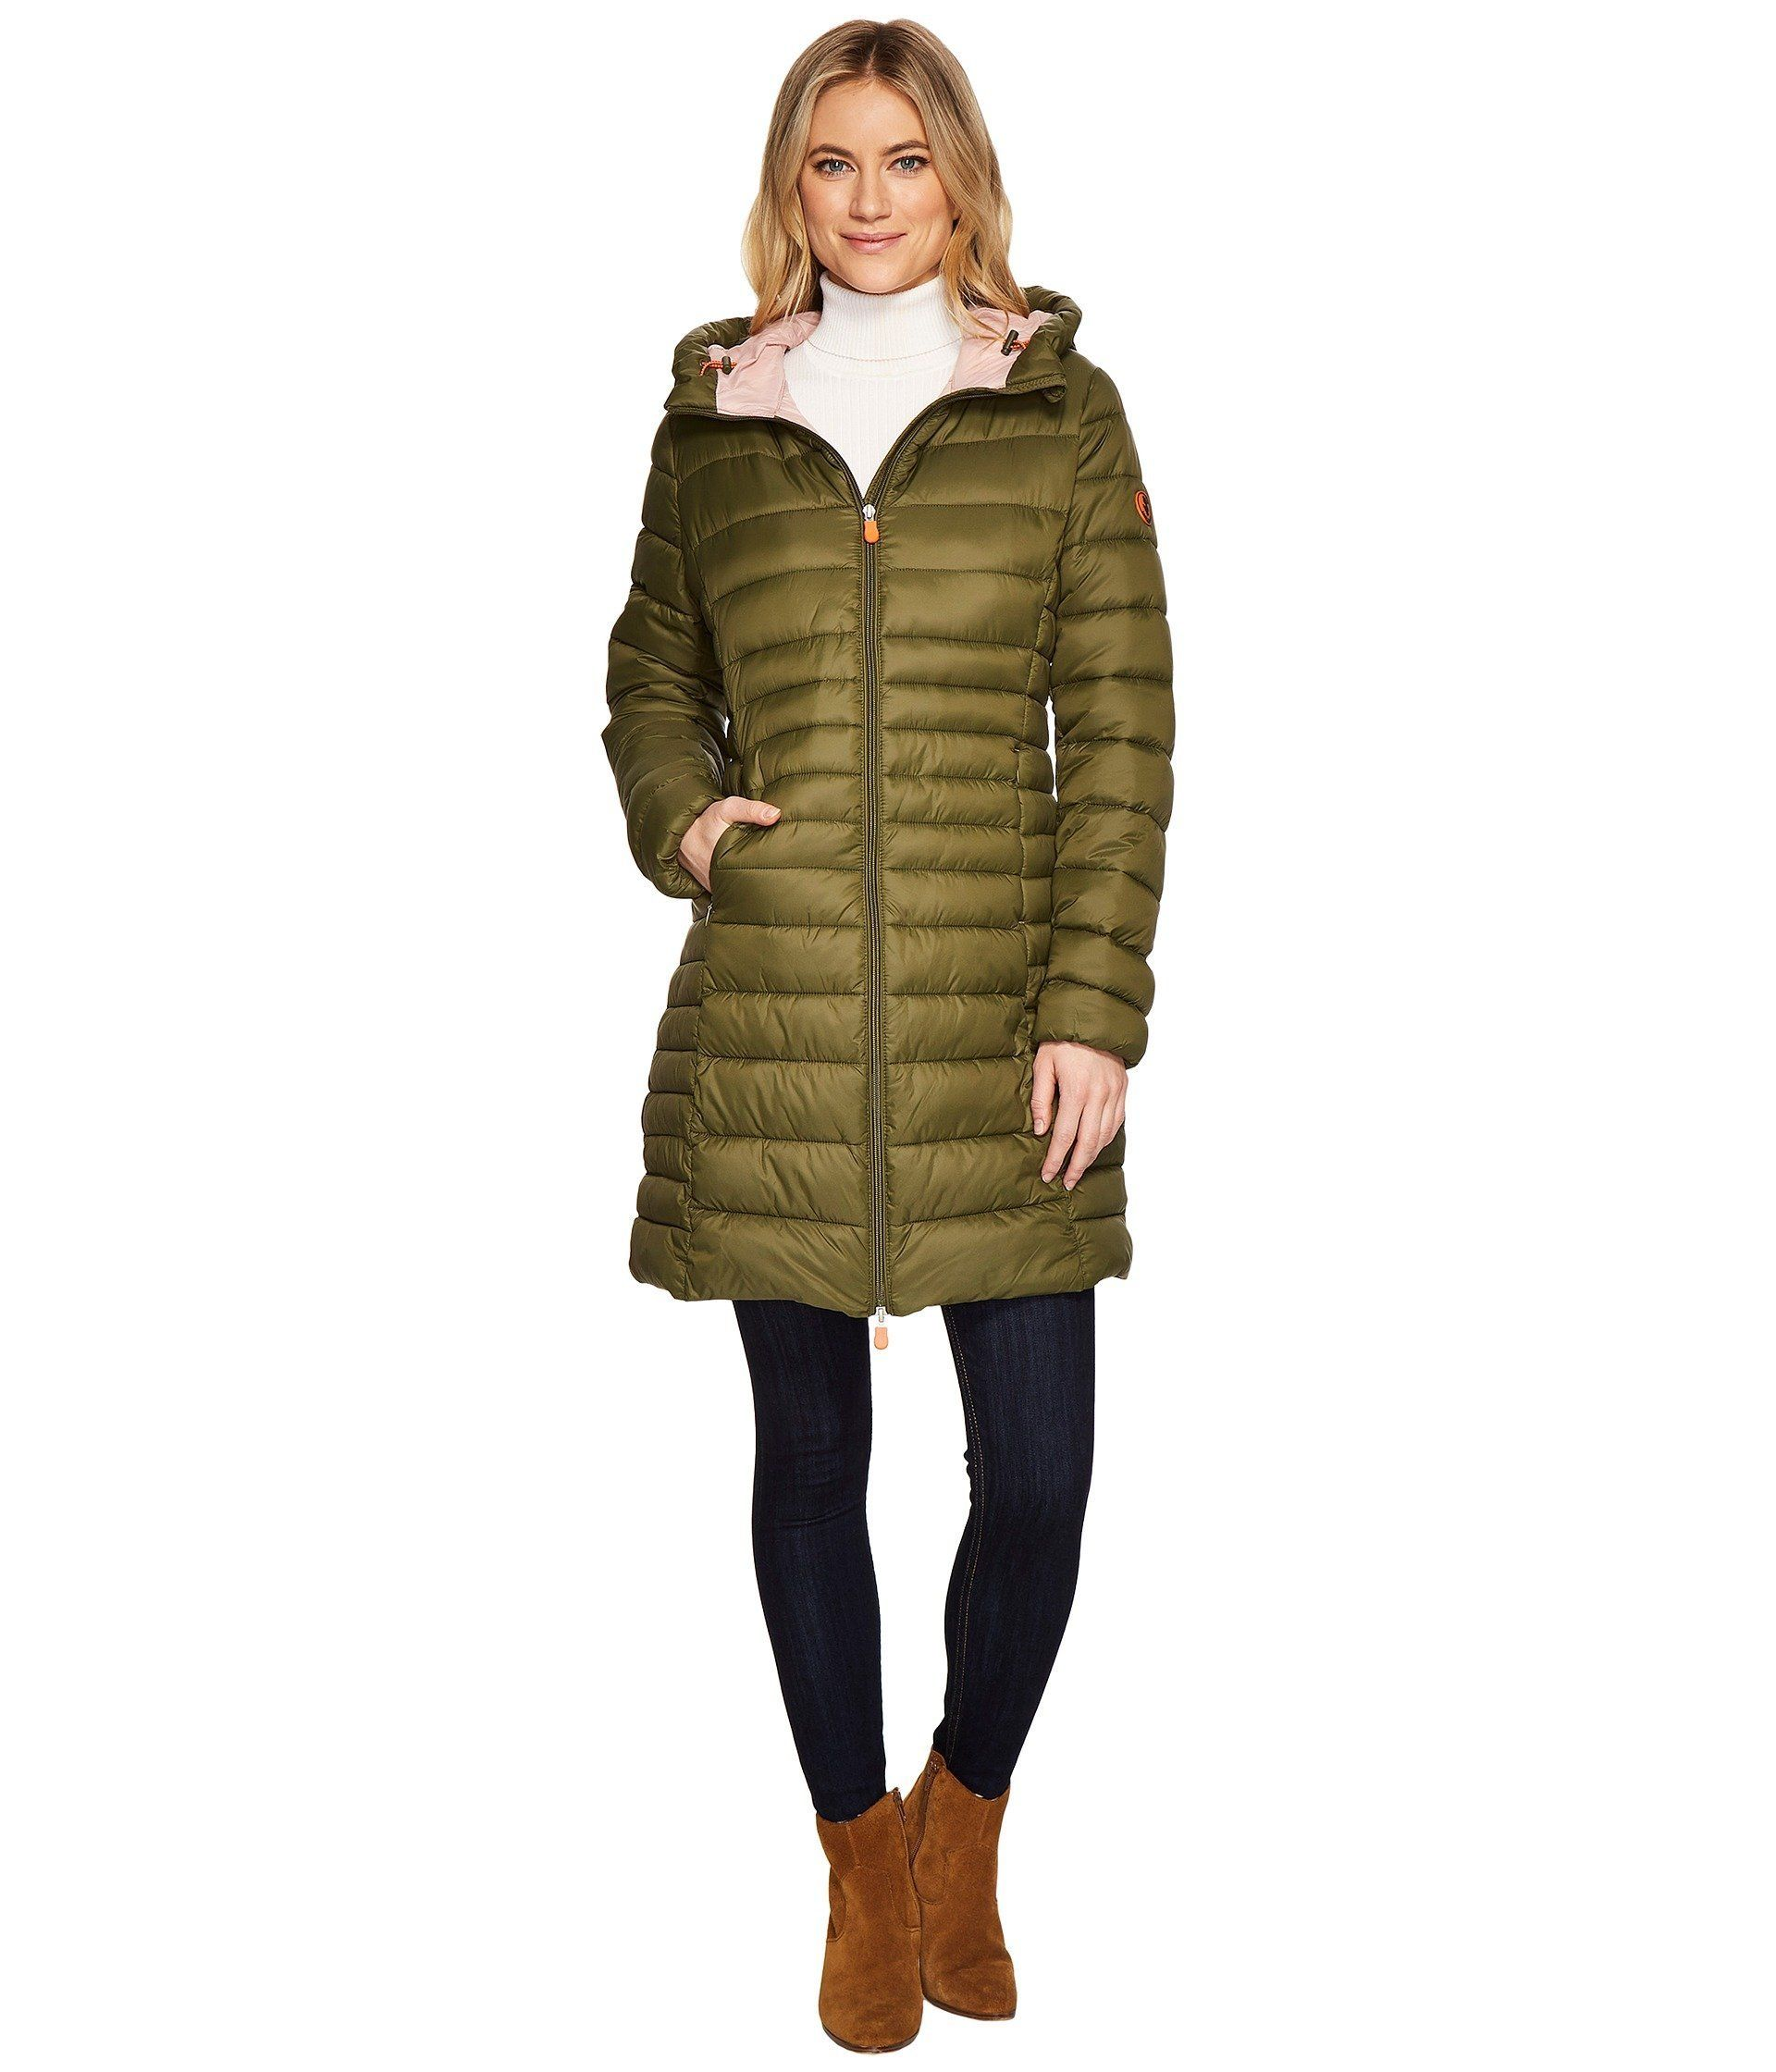 "Vegan brand, <a href=""https://www.zappos.com/p/save-the-duck-long-basic-nylon-coat-dusty-olive/product/8968591/color/3543"" ta"